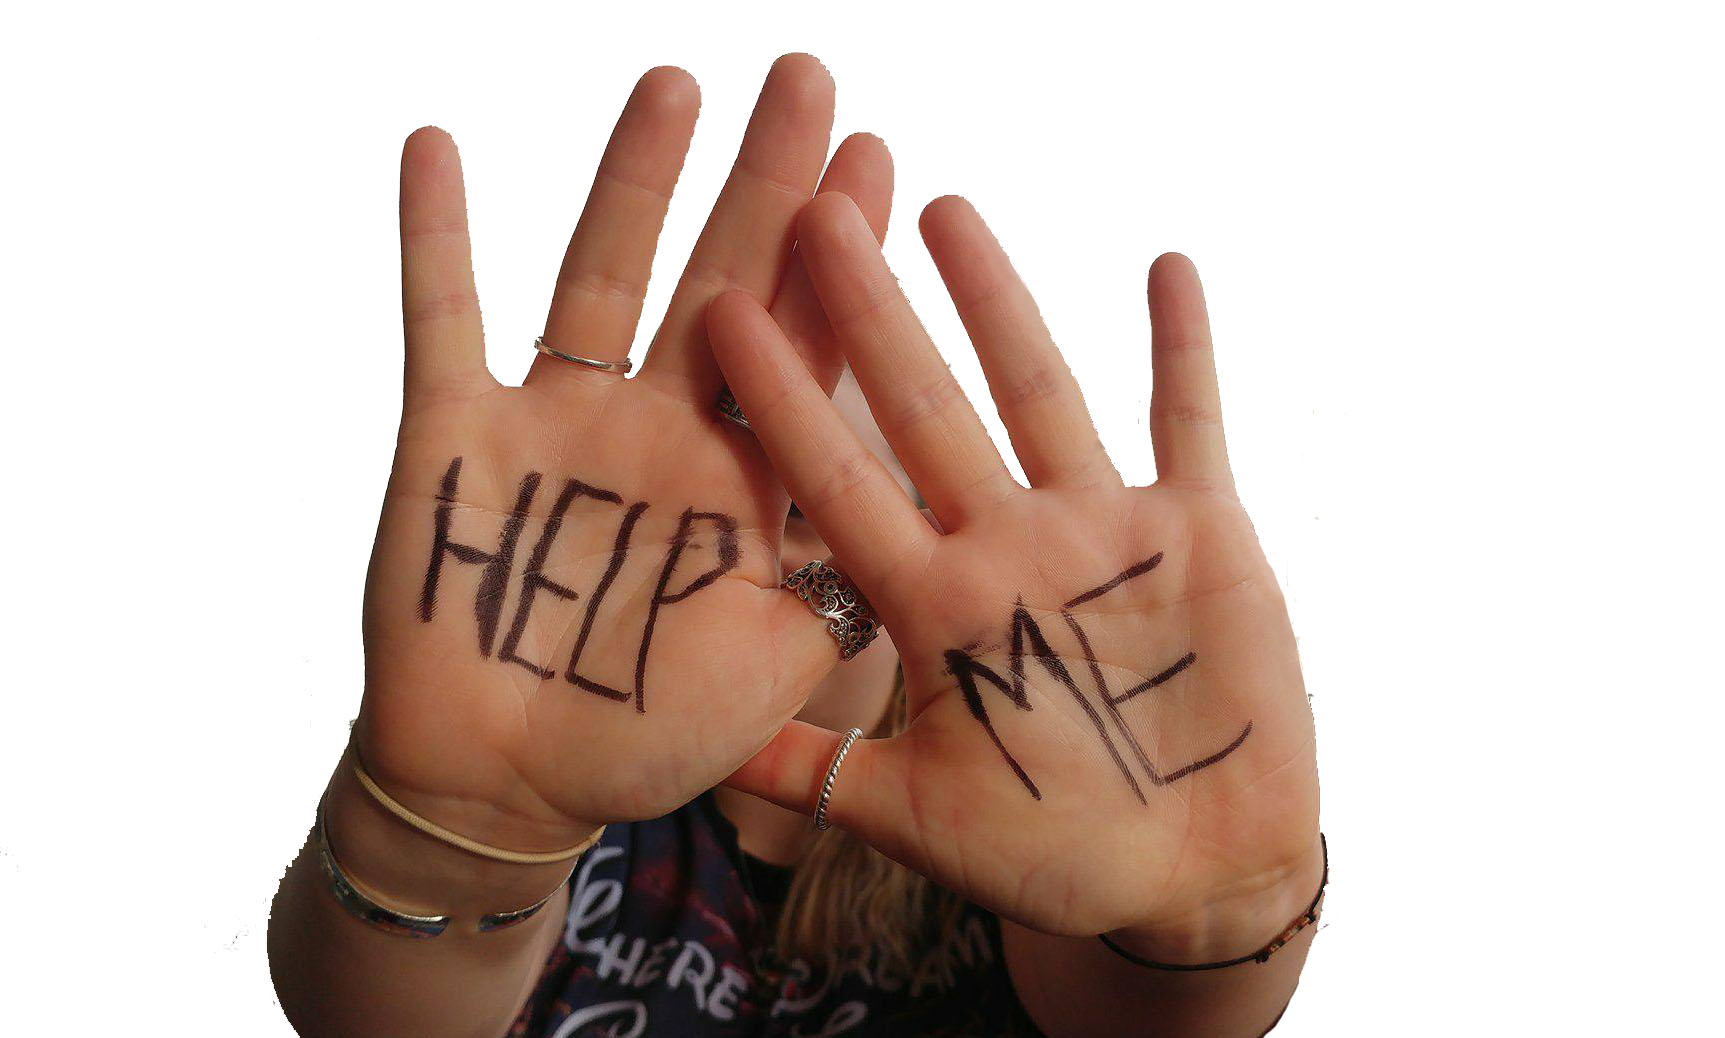 More and more young children are calling for help because of the internet and cyberbullying.